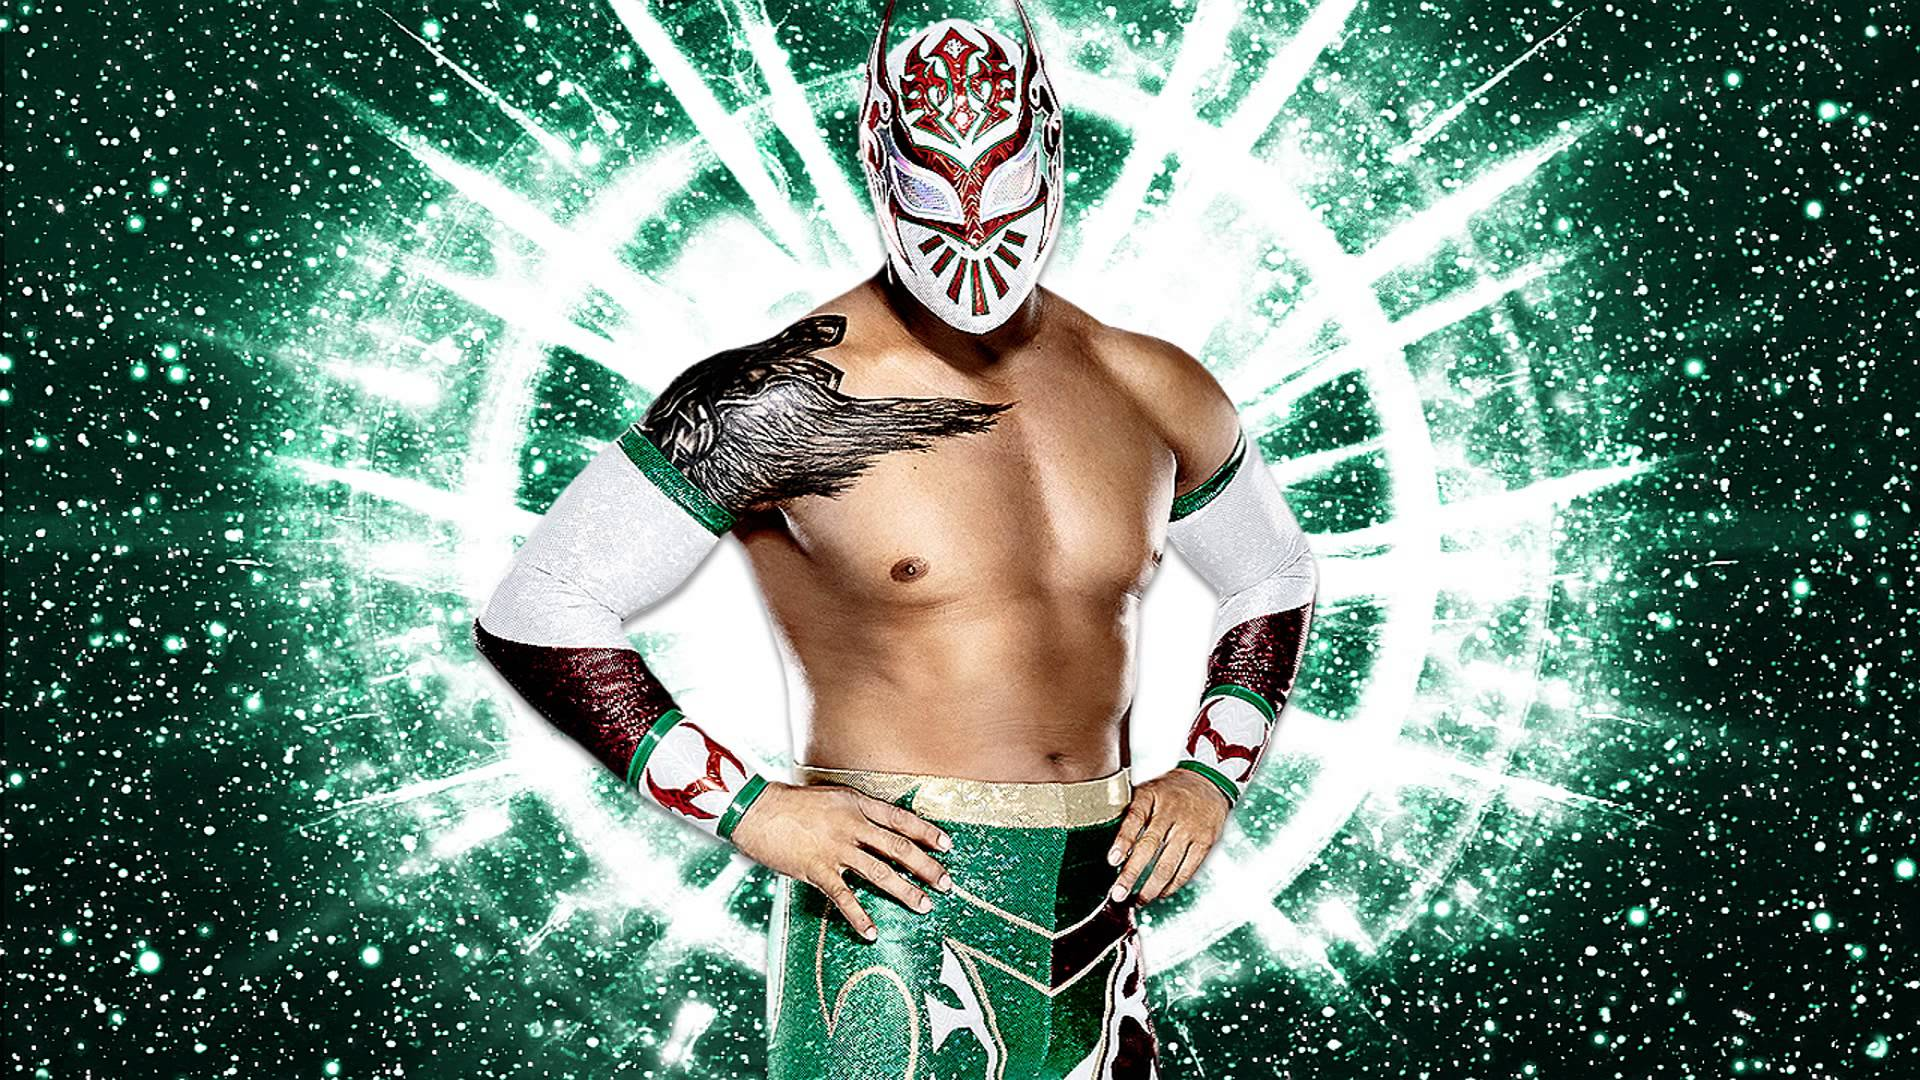 Wwe Superstars Images Sin Cara HD Wallpaper And Background Photos